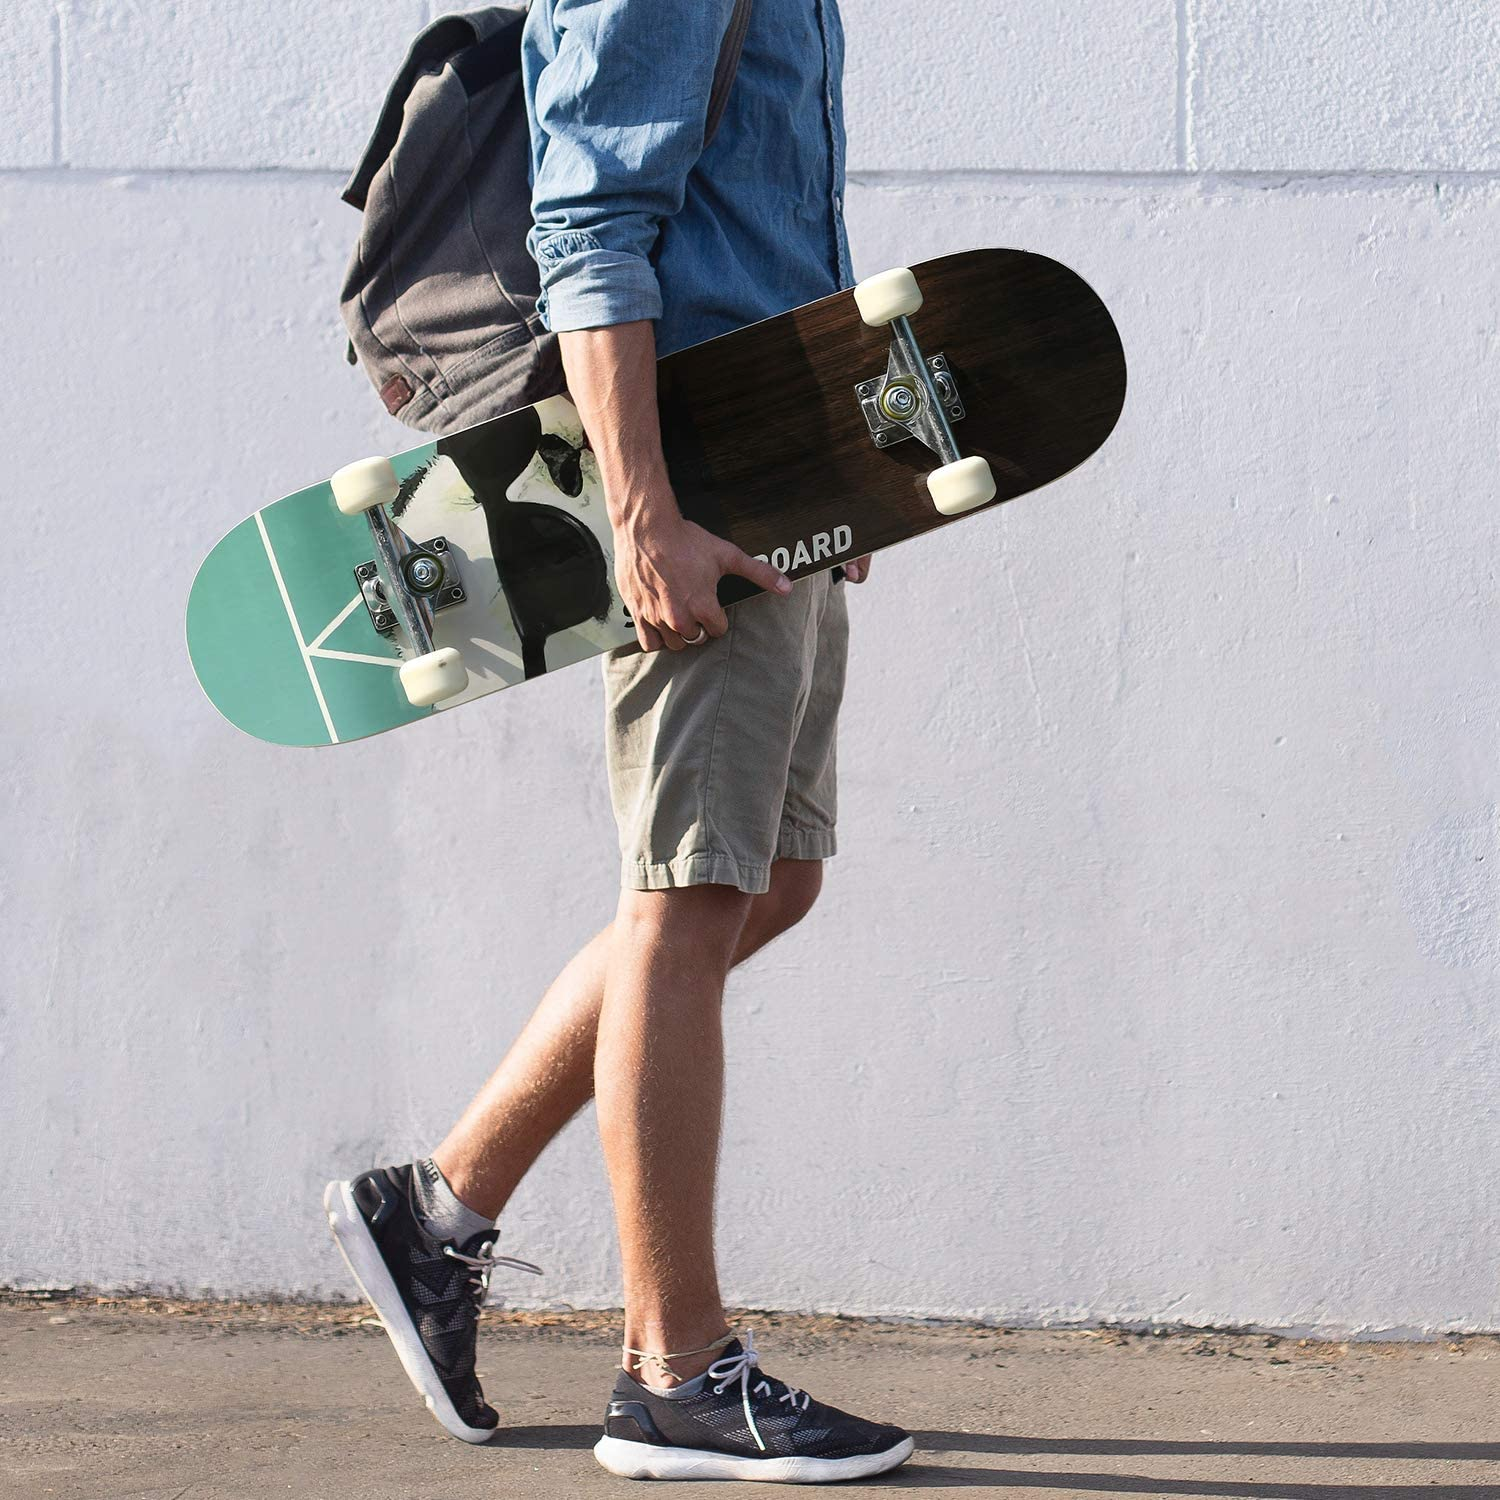 Standard Skate Boards for Youths Beginners Sports Lovers 31x 8 streakboard Skateboard 7 Layer Canadian Maple Double Kick Deck Concave Cruisers